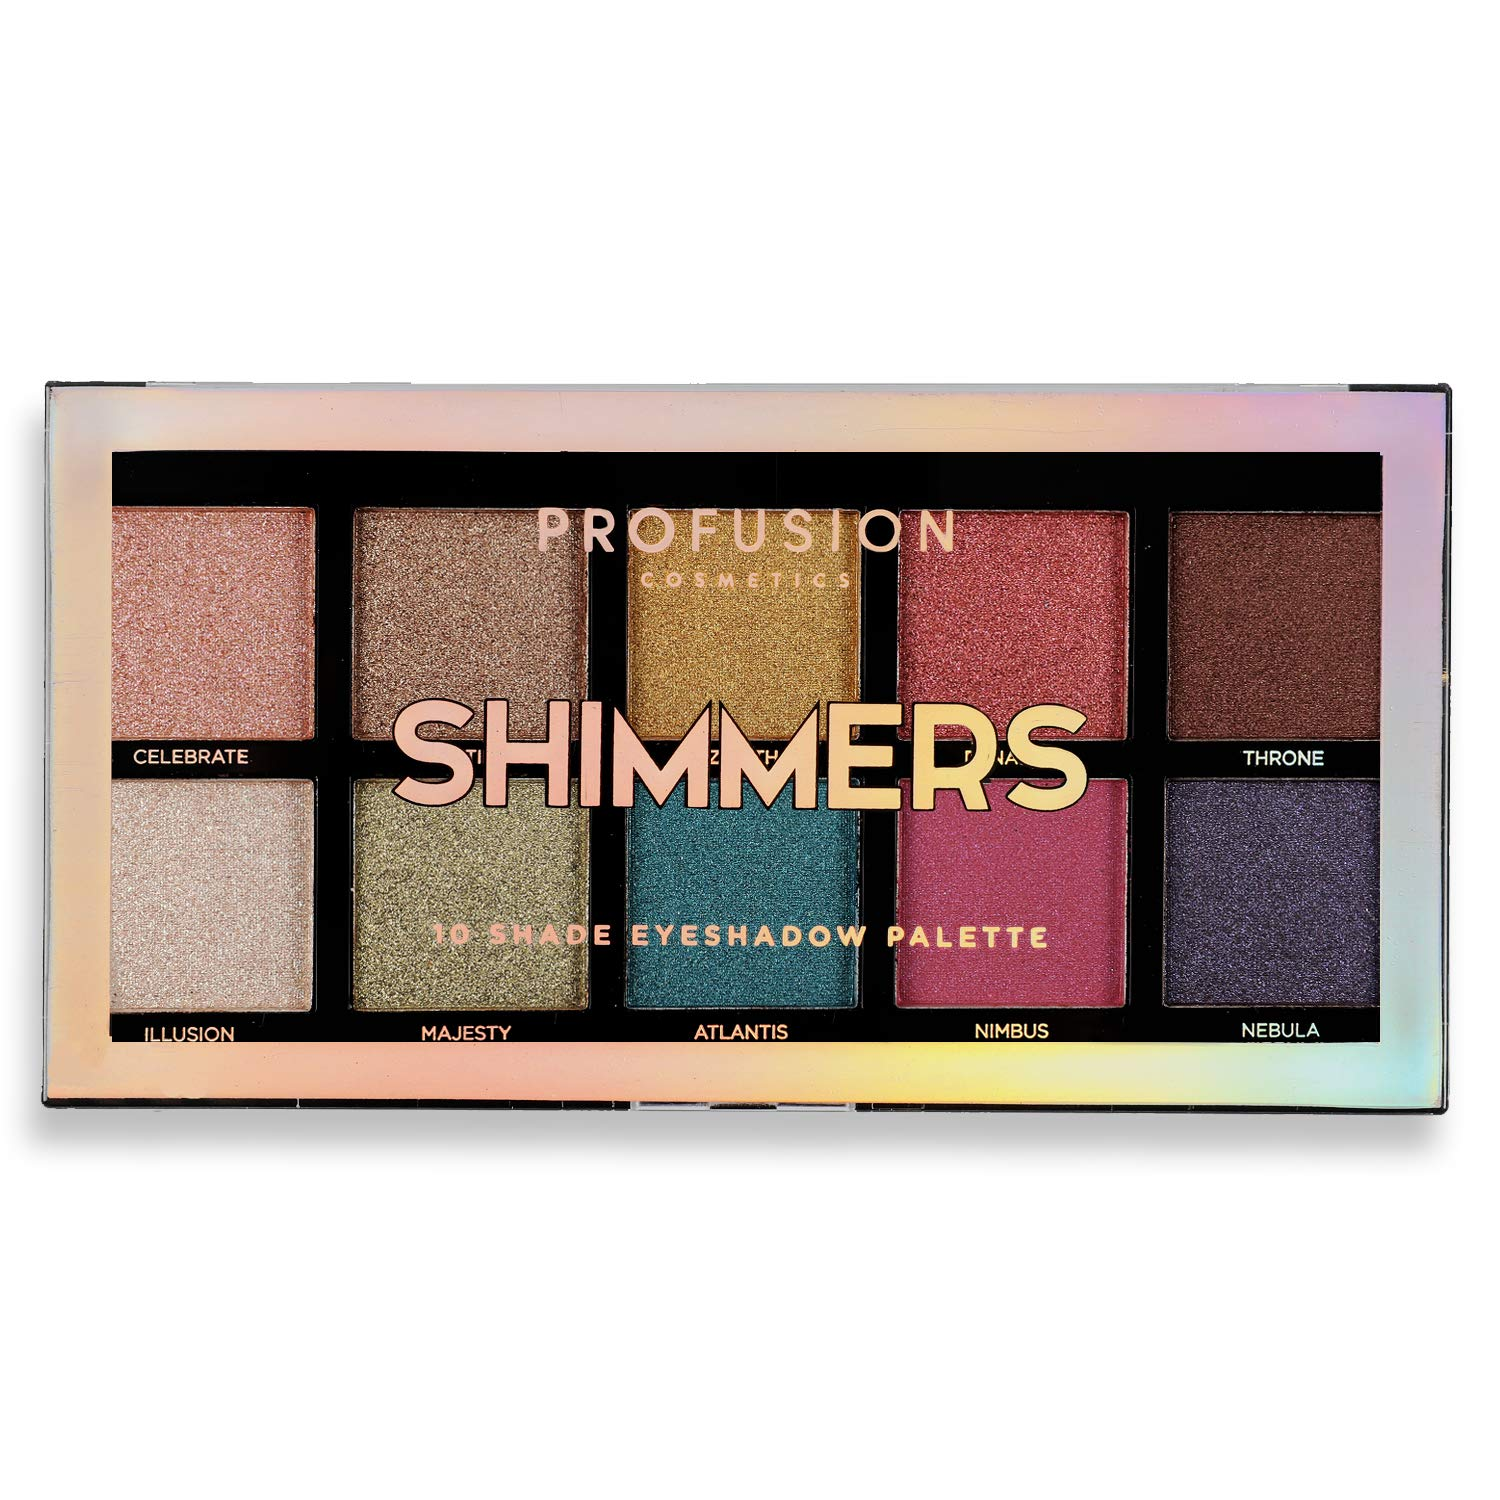 Profusion Cosmetics - 10 Shade Eyeshadow Palette Collection, Shimmer